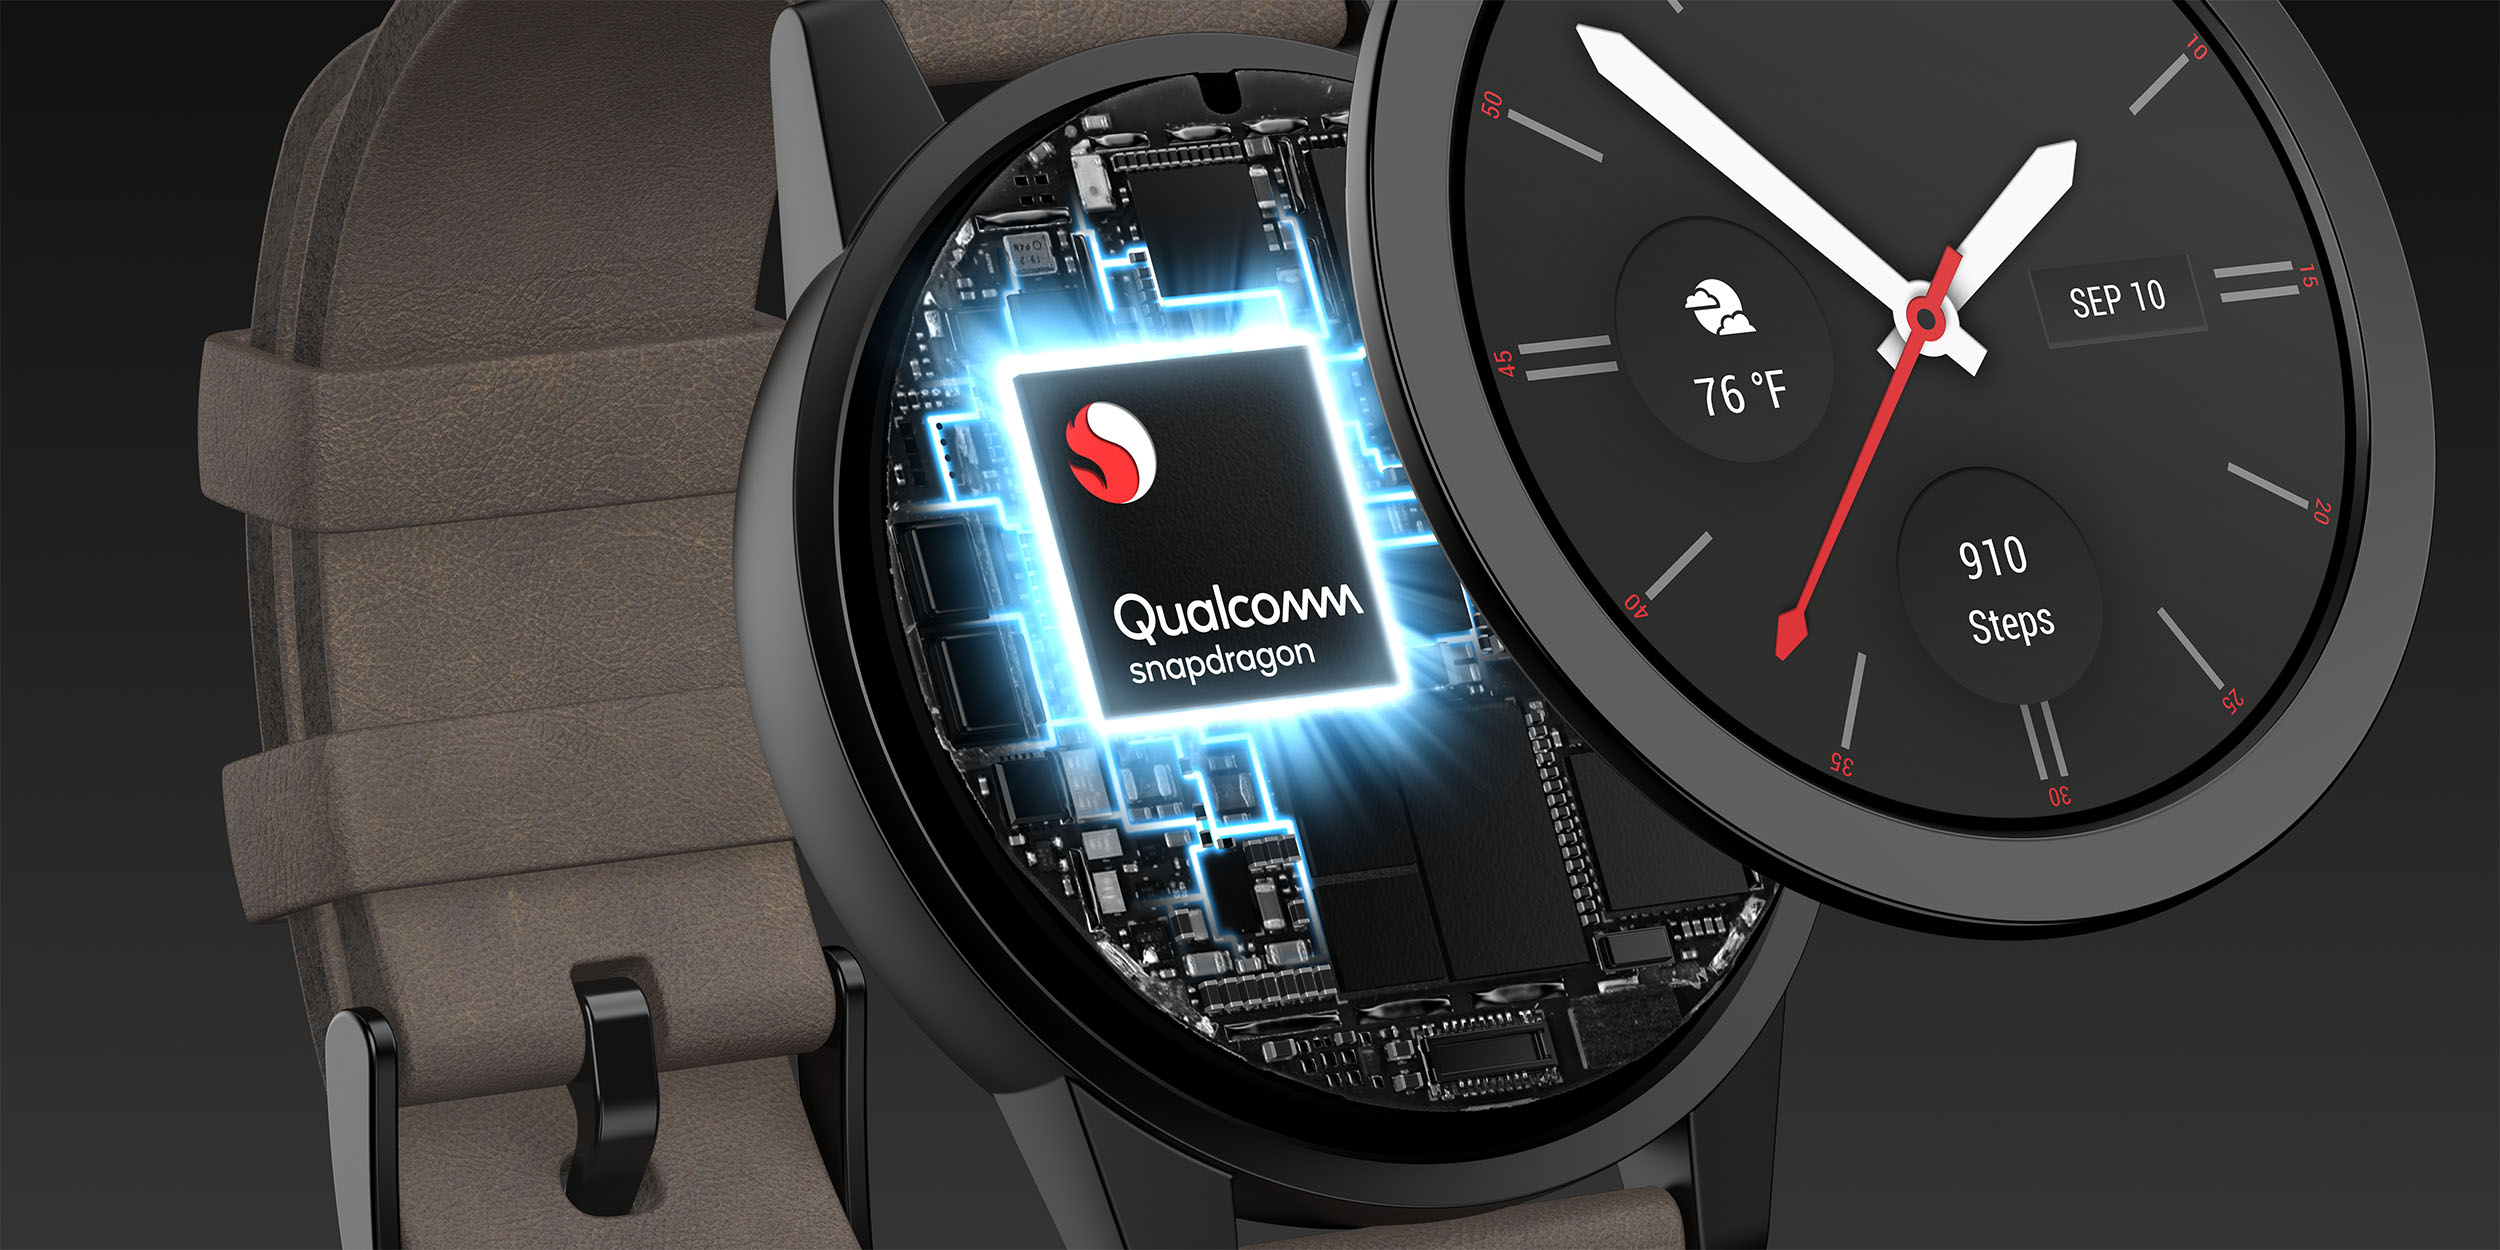 Qualcomm reports intends to deliver new Snapdragon Wear chips for future smartwatches